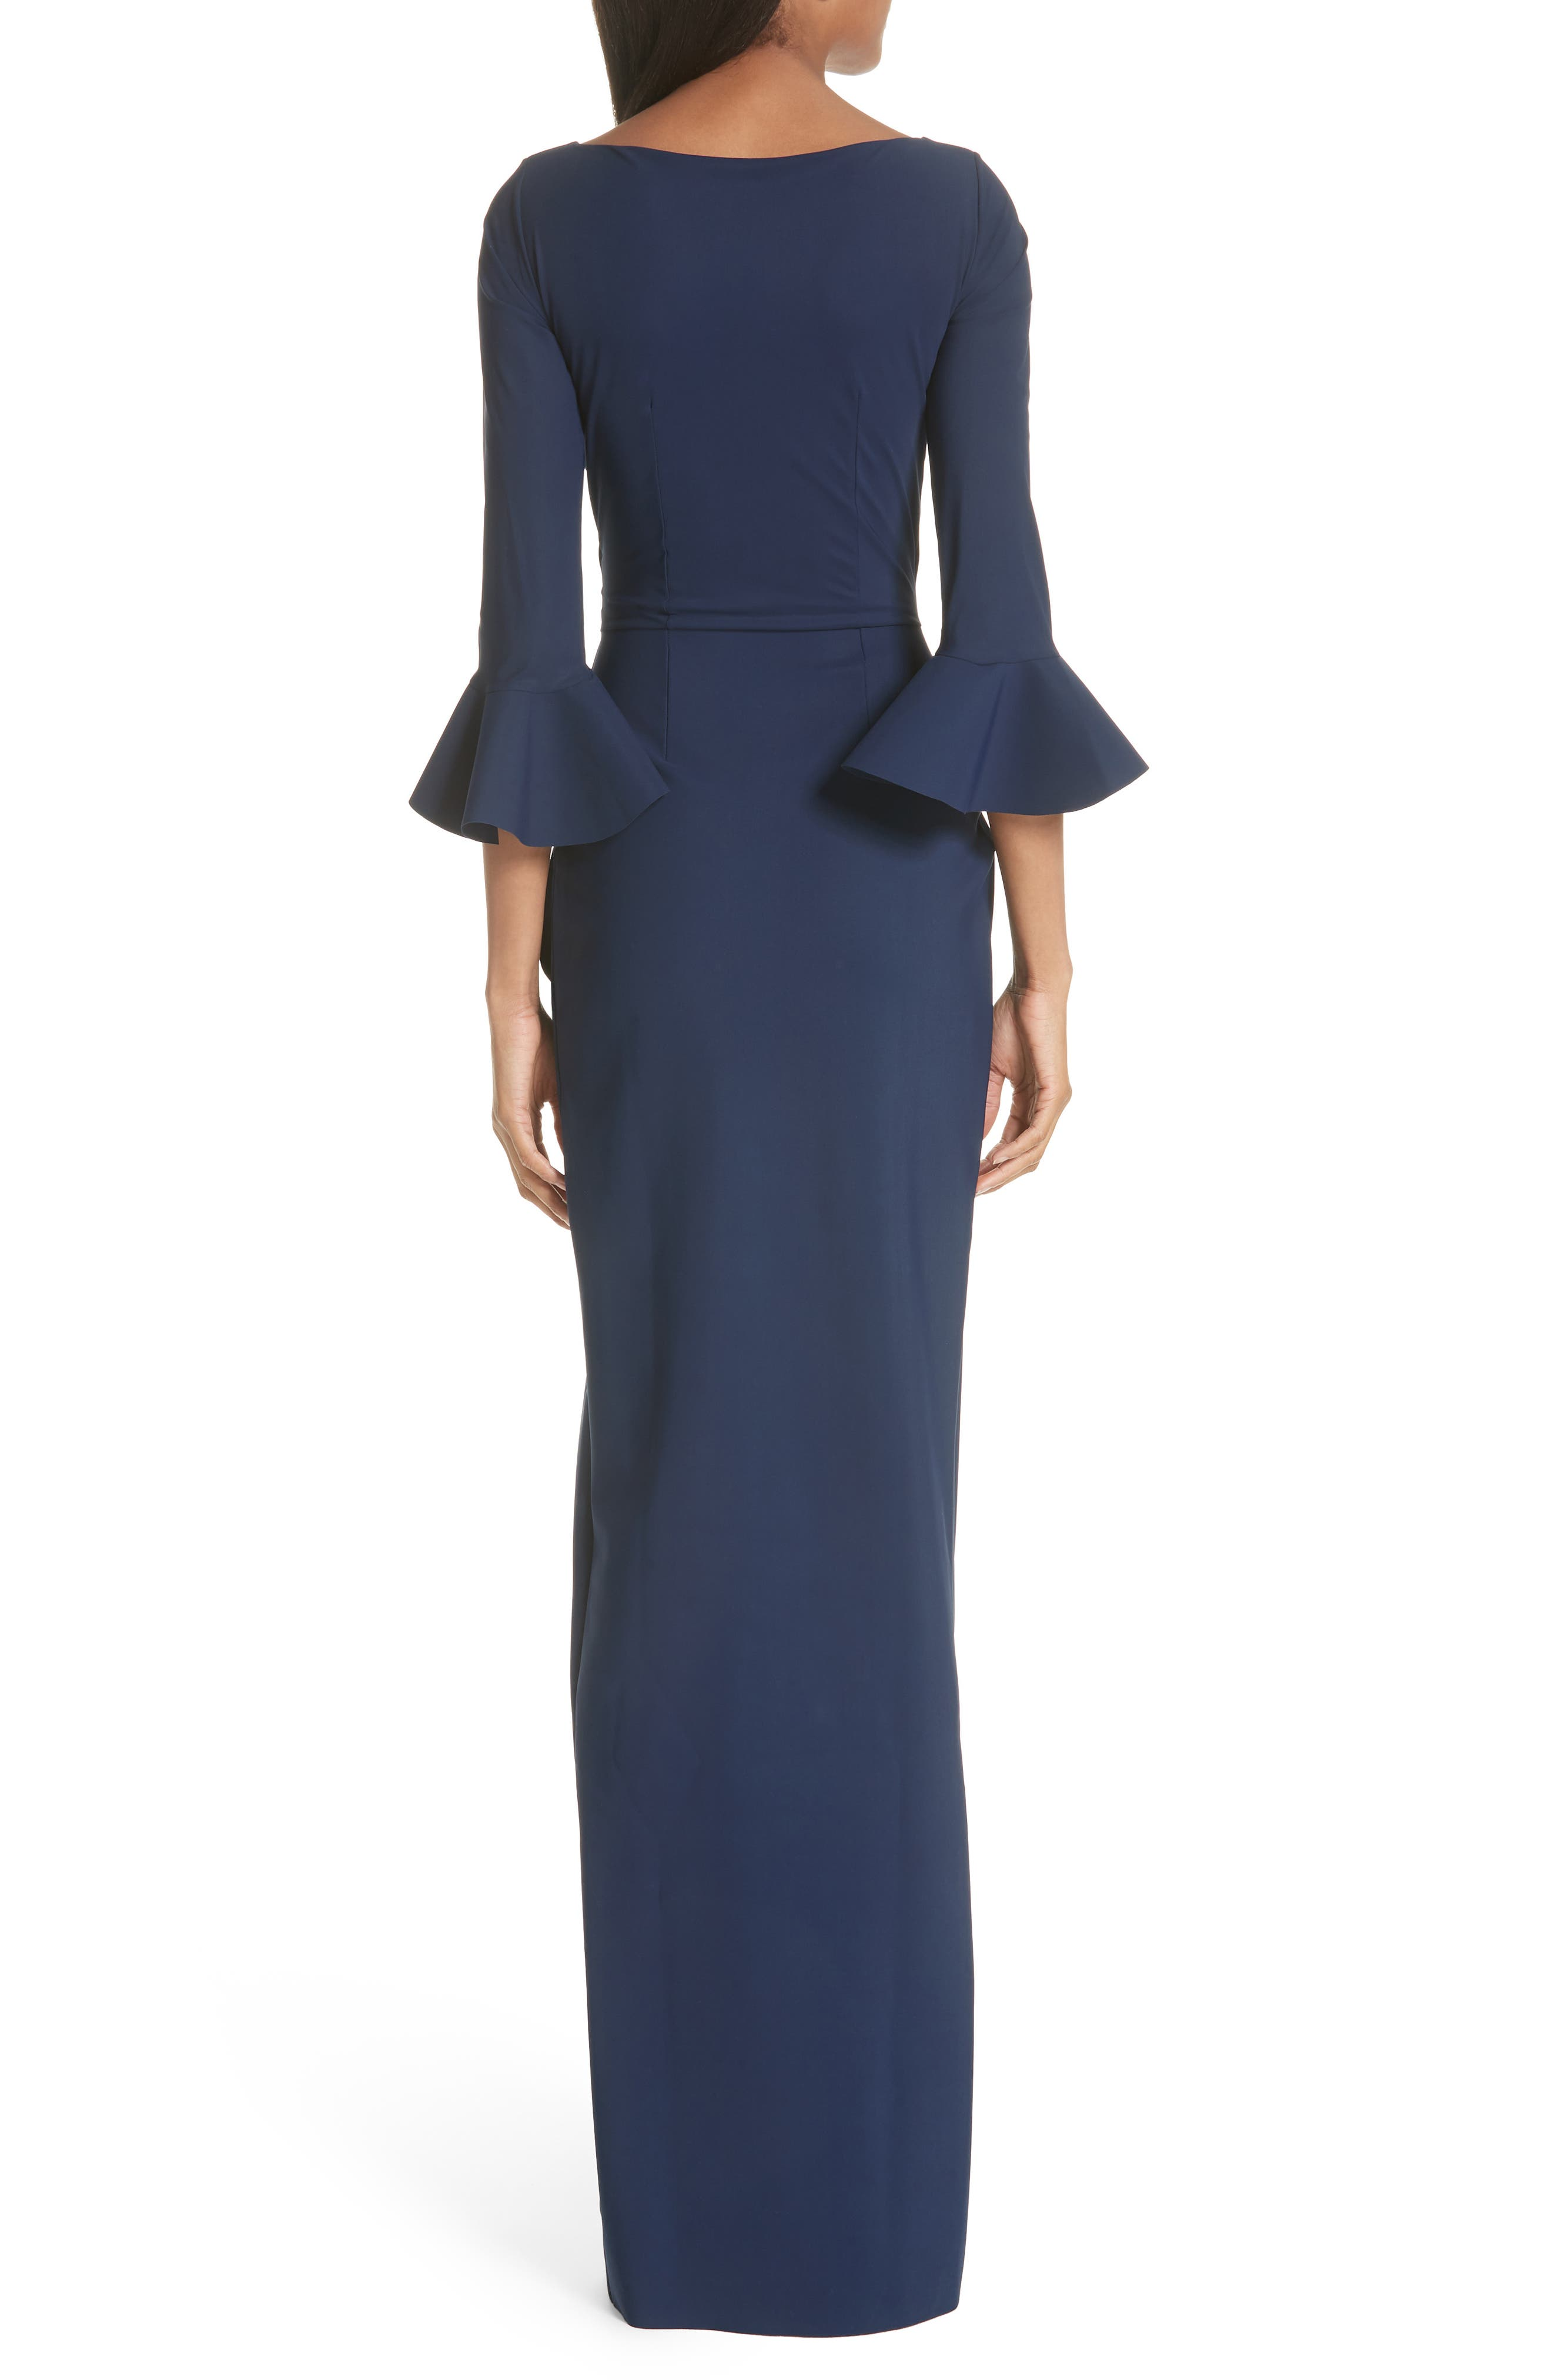 Ruched Bell Sleeve Evening Dress,                             Alternate thumbnail 2, color,                             BLUE NOTTE